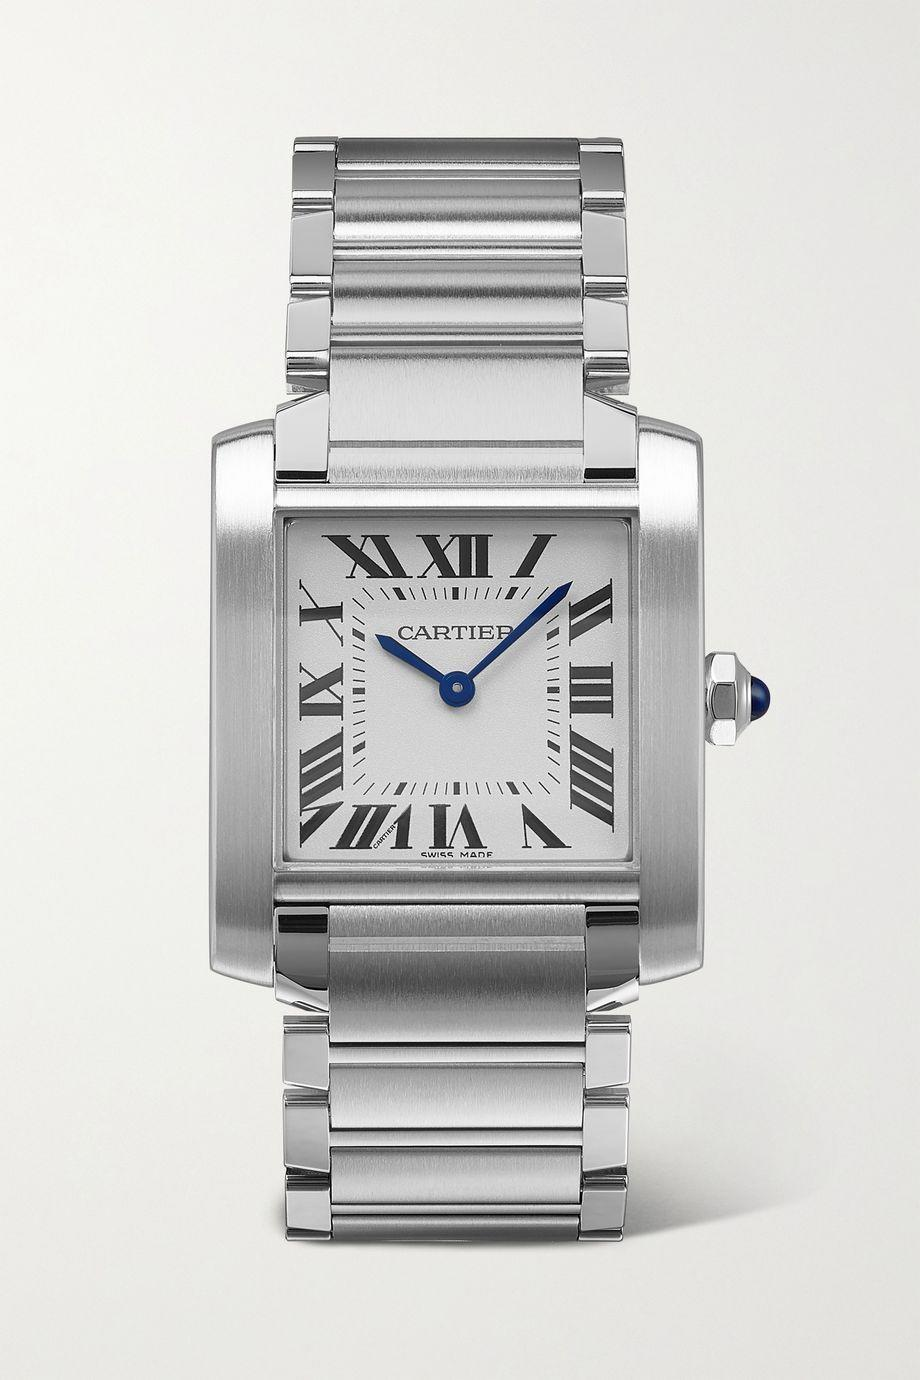 """<p>Cartier, £3,600.00</p><p><a class=""""link rapid-noclick-resp"""" href=""""https://go.redirectingat.com?id=127X1599956&url=https%3A%2F%2Fwww.net-a-porter.com%2Fen-gb%2Fshop%2Fproduct%2Fcartier%2Ftank-francaise-25mm-medium-stainless-steel-watch%2F1301941&sref=https%3A%2F%2Fwww.elle.com%2Fuk%2Ffashion%2Fwhat-to-wear%2Farticles%2Fg31918%2Fbest-watches-to-buy-this-season%2F"""" rel=""""nofollow noopener"""" target=""""_blank"""" data-ylk=""""slk:SHOP NOW"""">SHOP NOW</a></p>"""